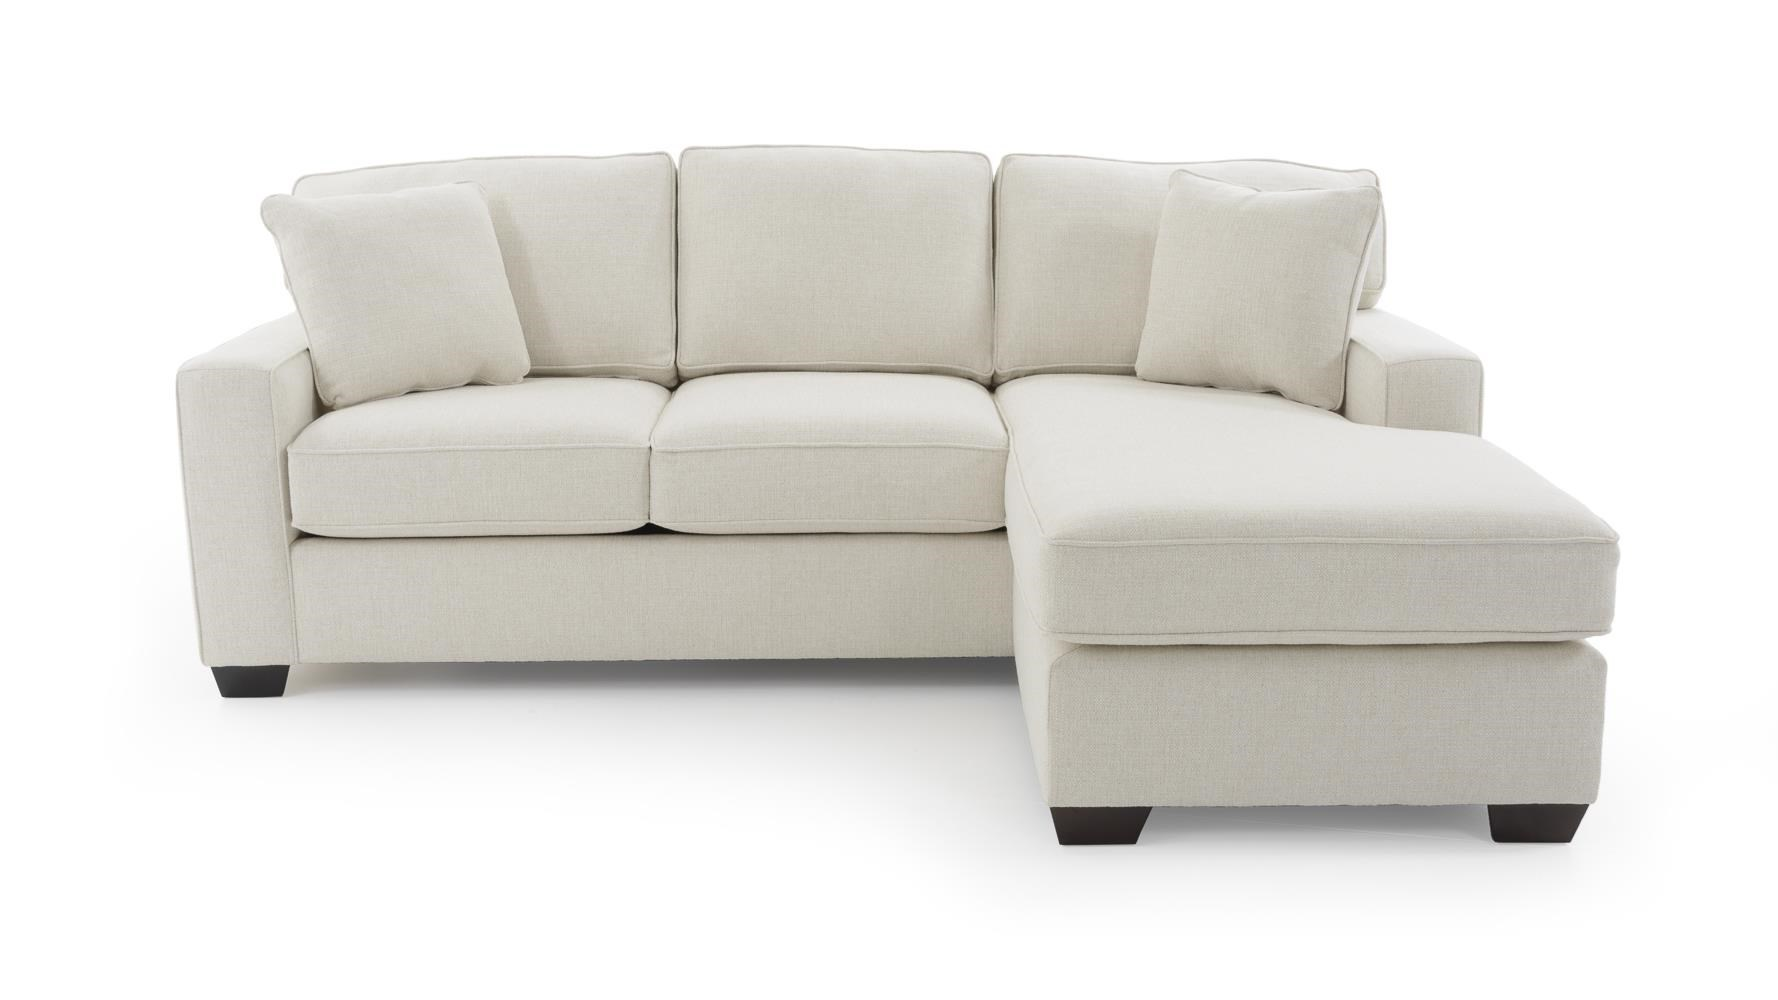 Merveilleux Max Home BermudaSofa With Removable Chaise ...